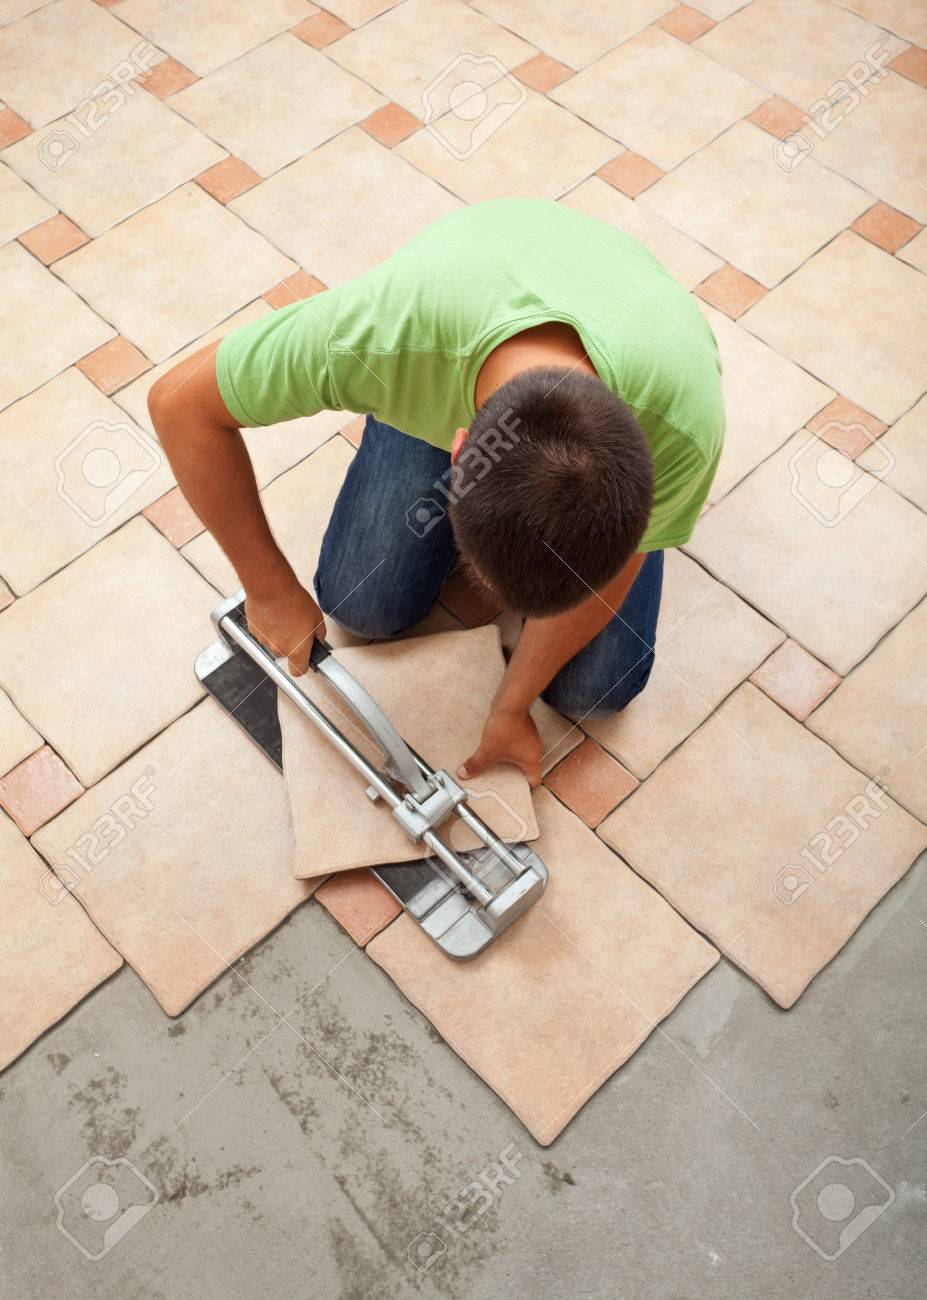 Worker Cutting Ceramic Floor Tile - Top View Of The Work Site Stock ...